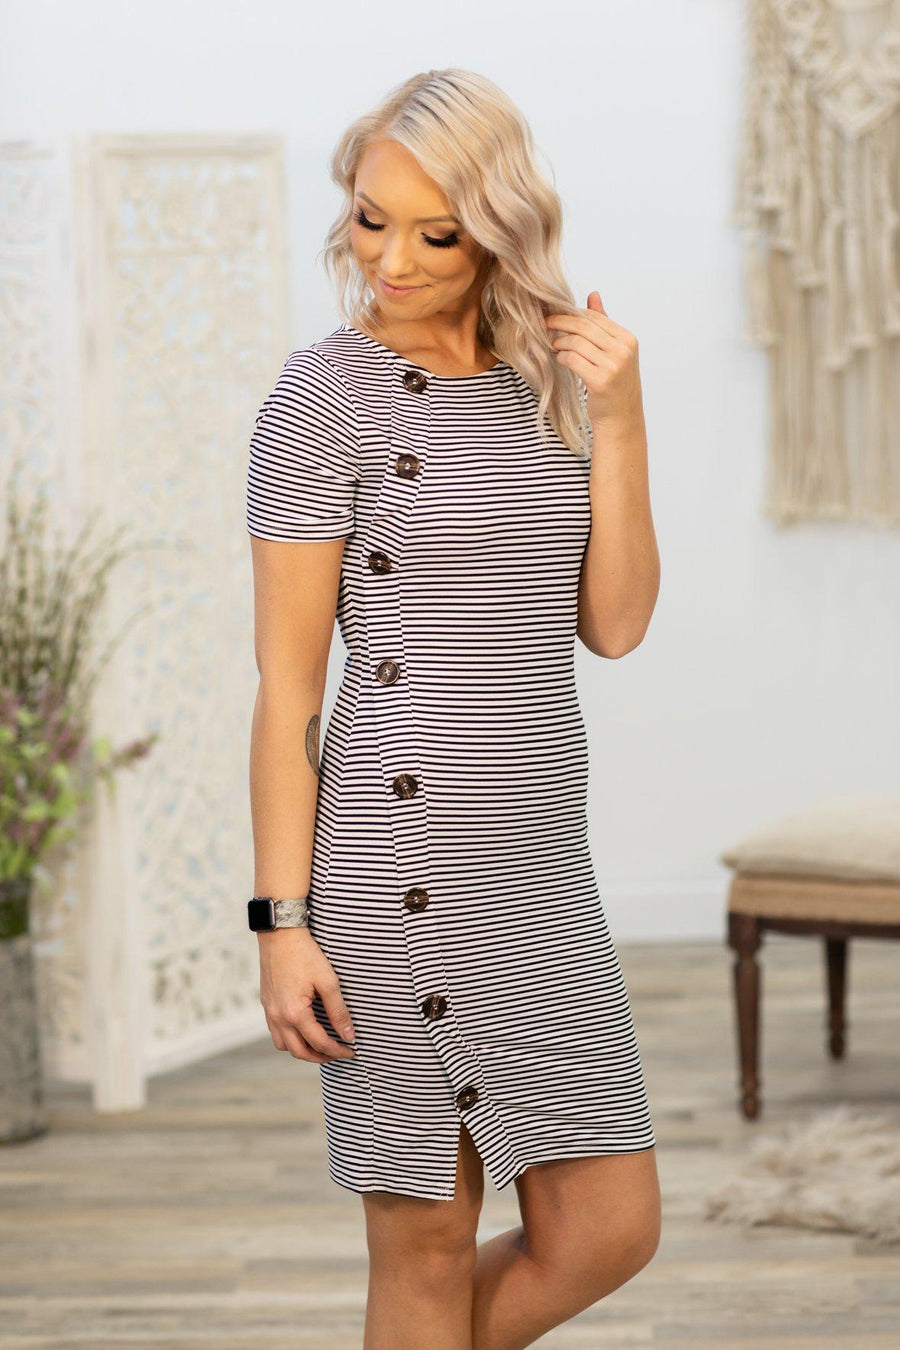 fd990d4d7757 The Rest Don't Matter Striped Button Detail Dress in Black Ivory